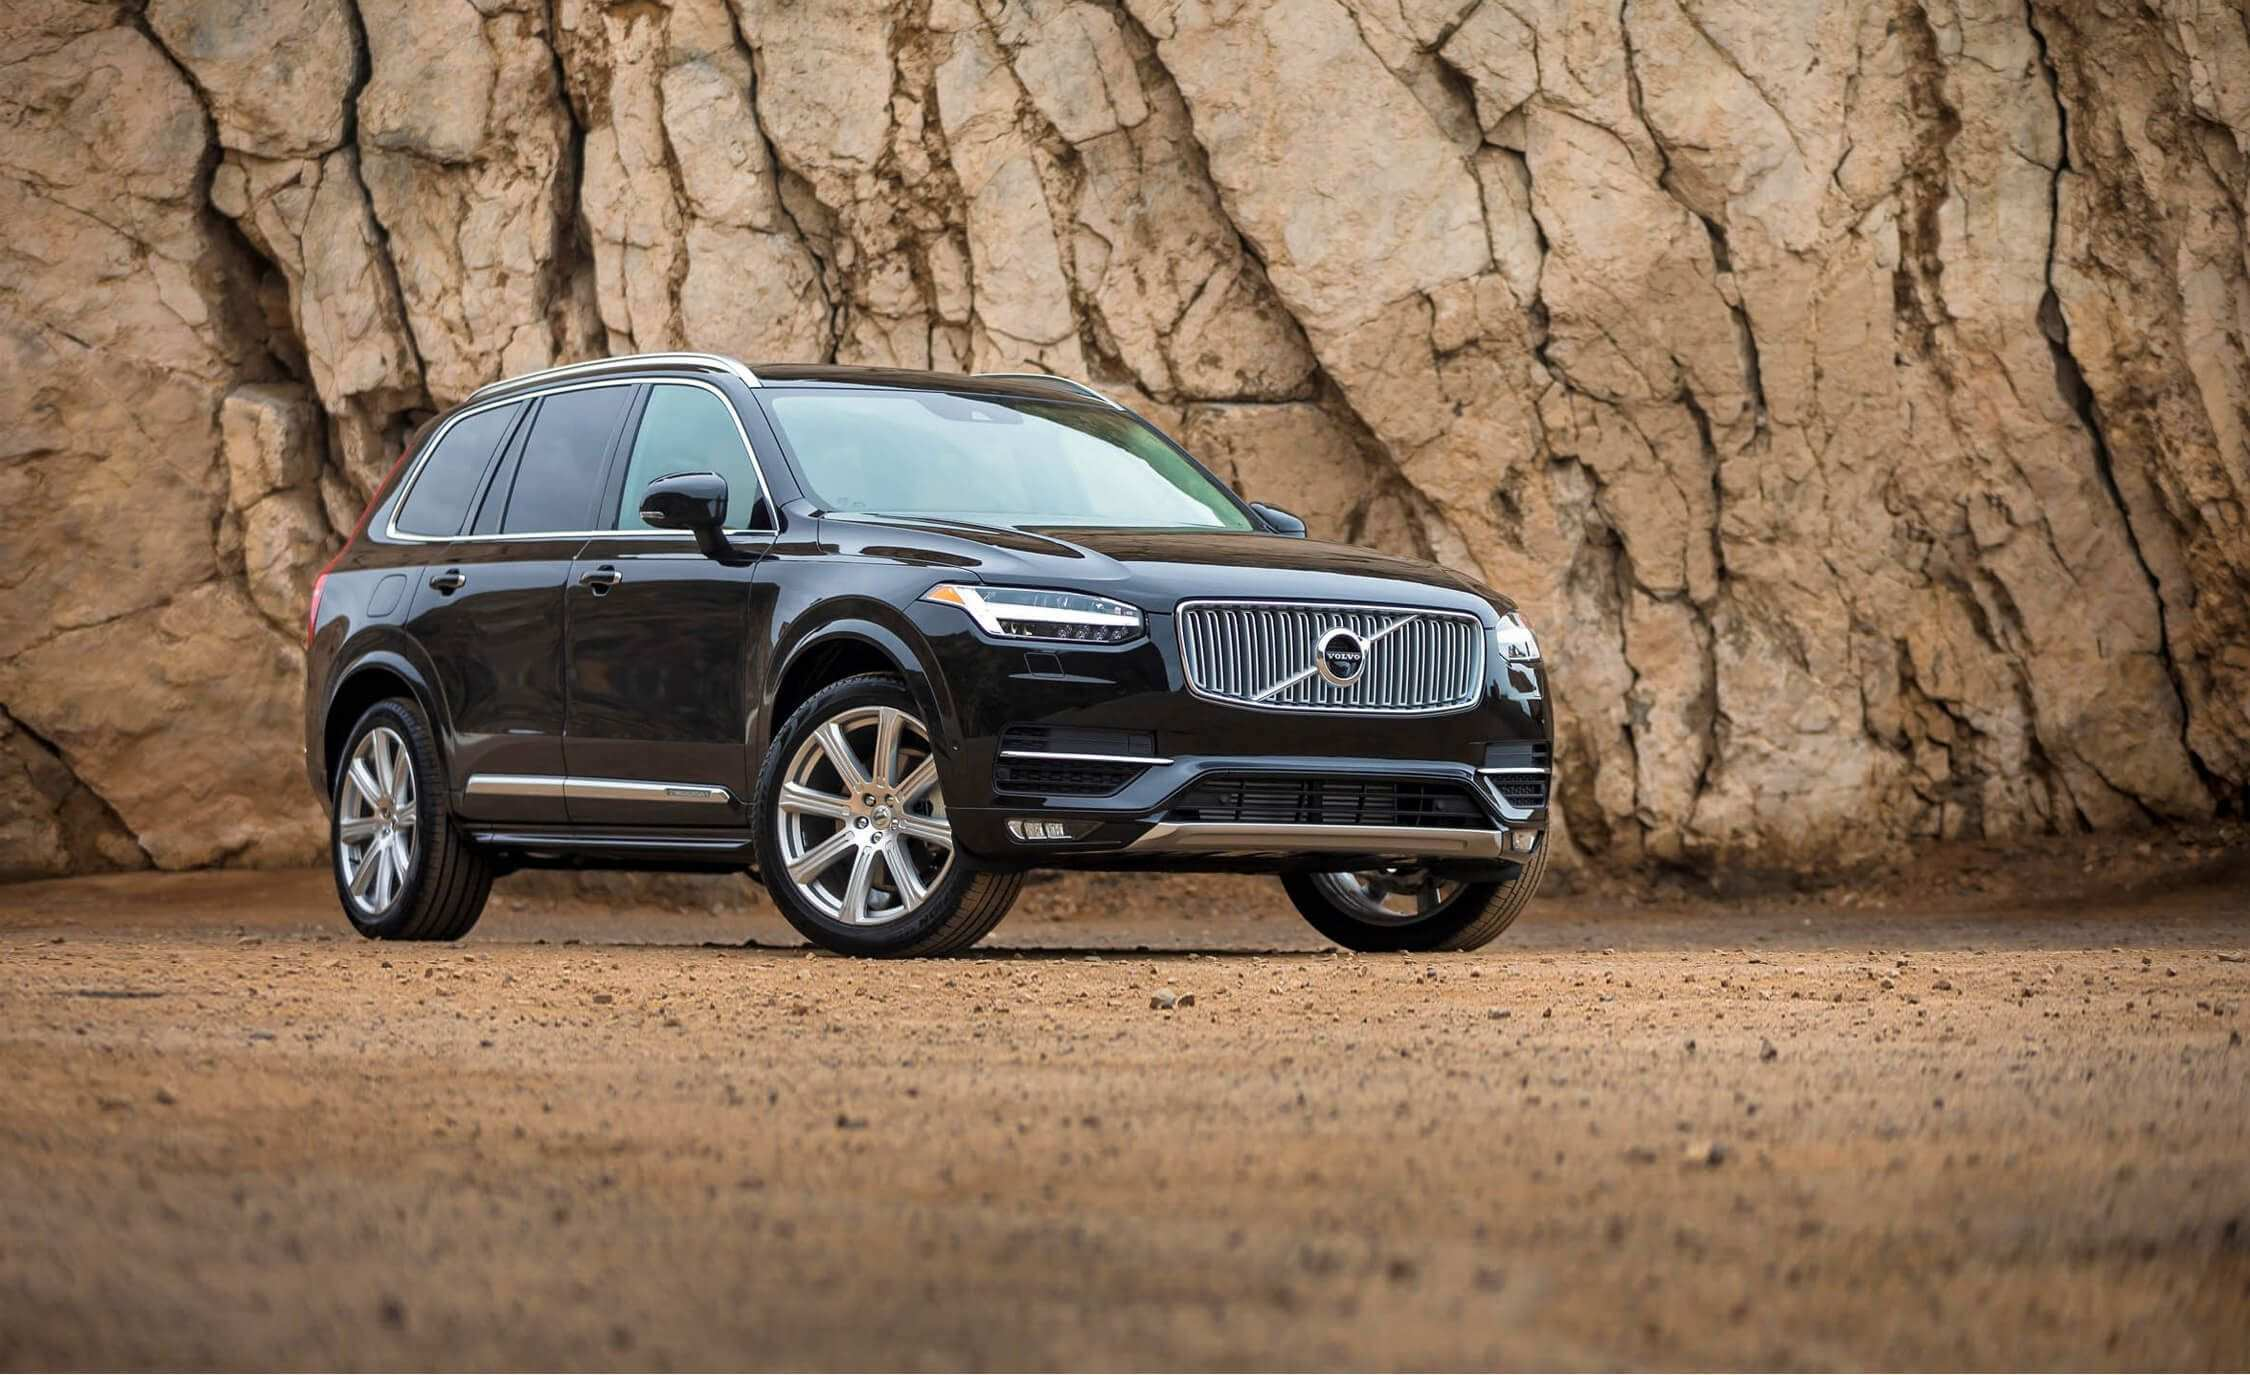 38 The 2020 Volvo Xc90 New Concept New Review for 2020 Volvo Xc90 New Concept